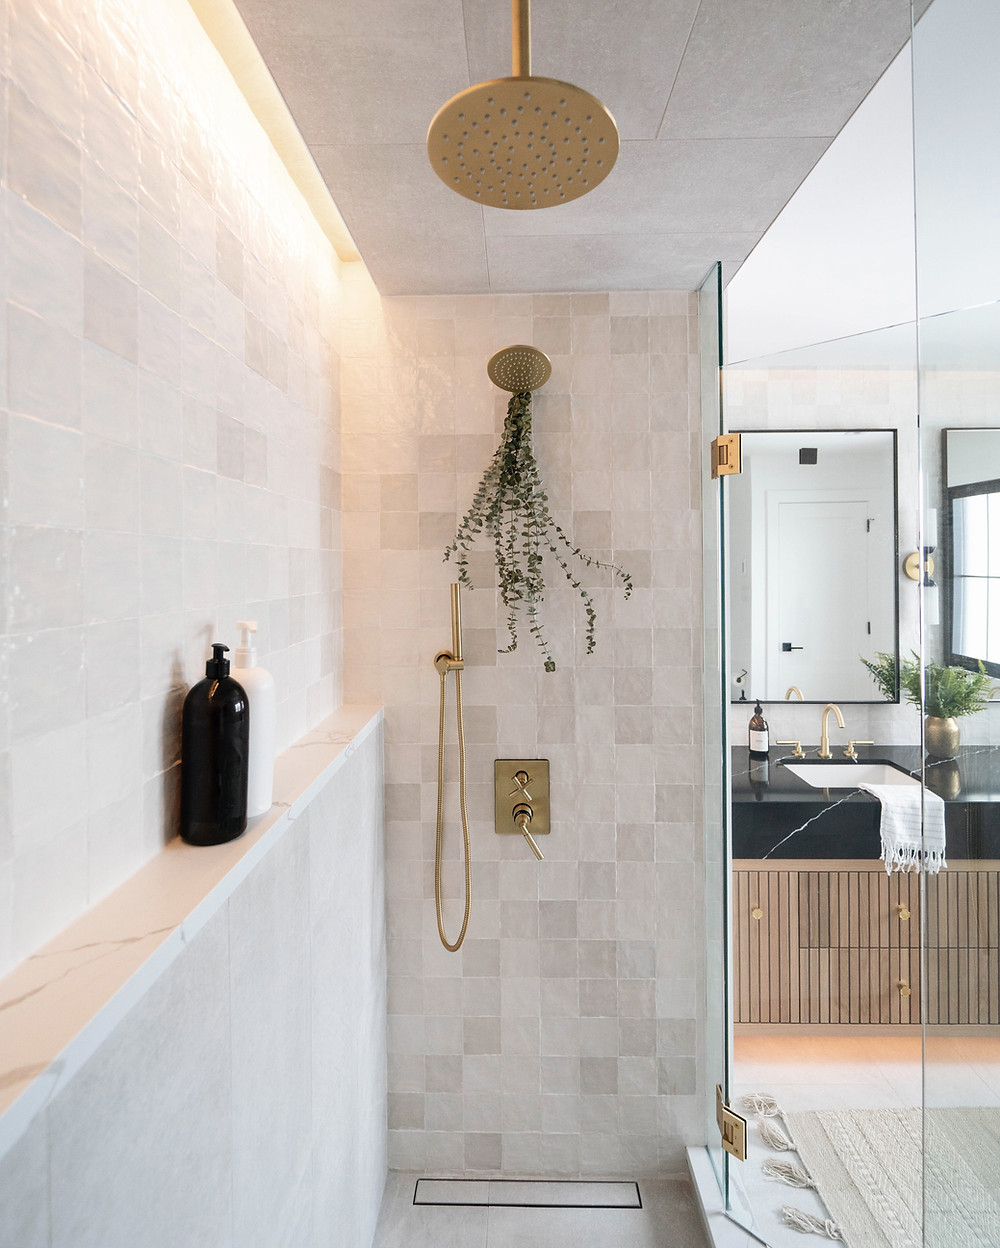 Riad textured tile makes a statement in this spa like ensuite bathroom seen in the Leclair Home. Beautiful brass fixtures and integrated lighting showcase this tiles natural texture